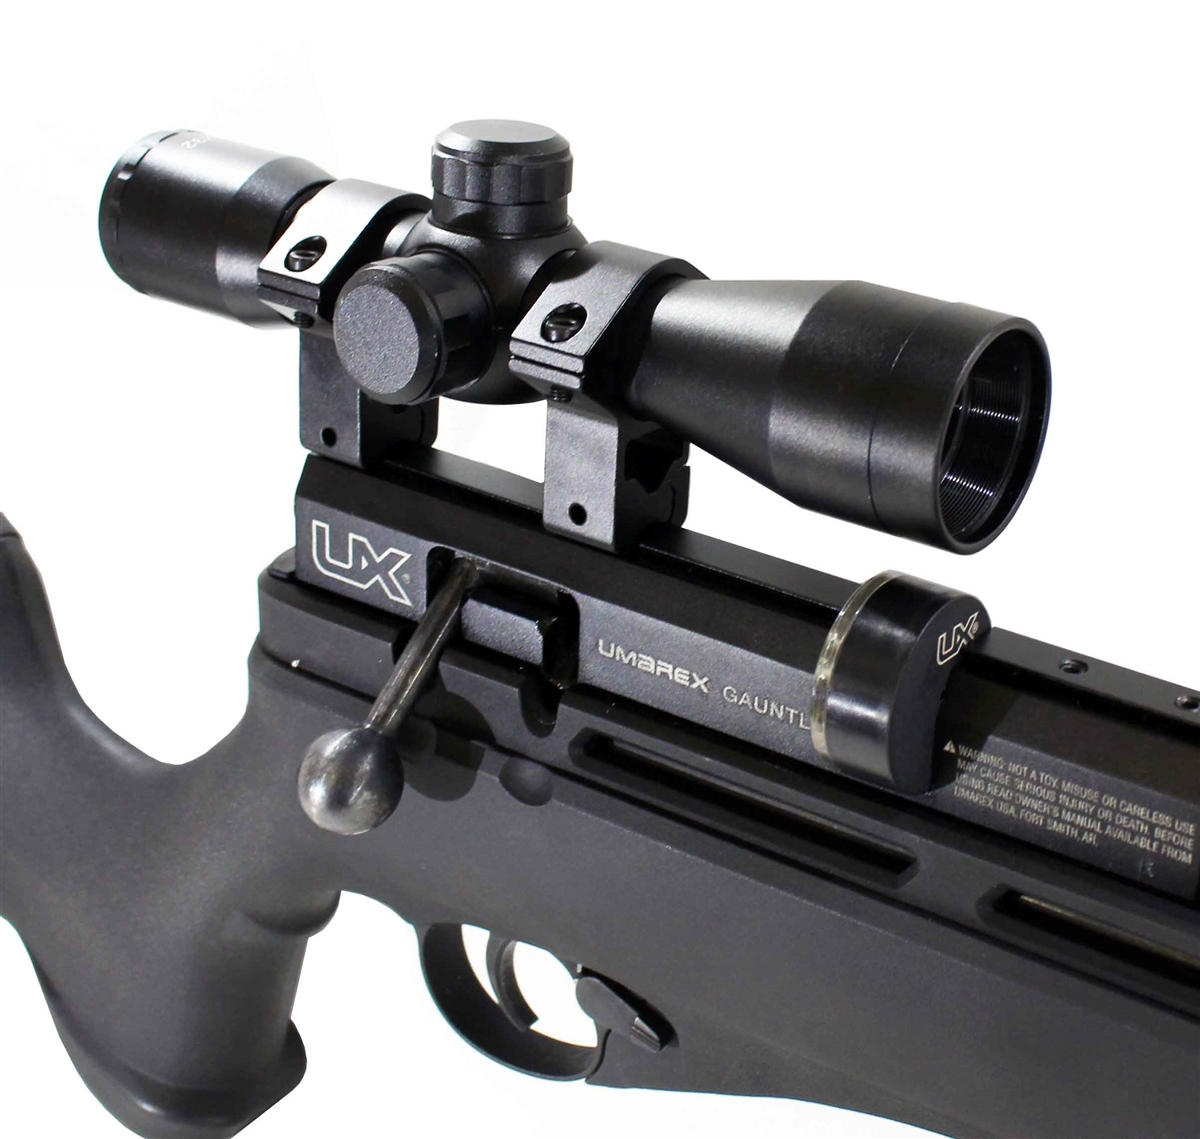 4X32 hunting scope for Umarex Gauntlet PCP Air Rifle